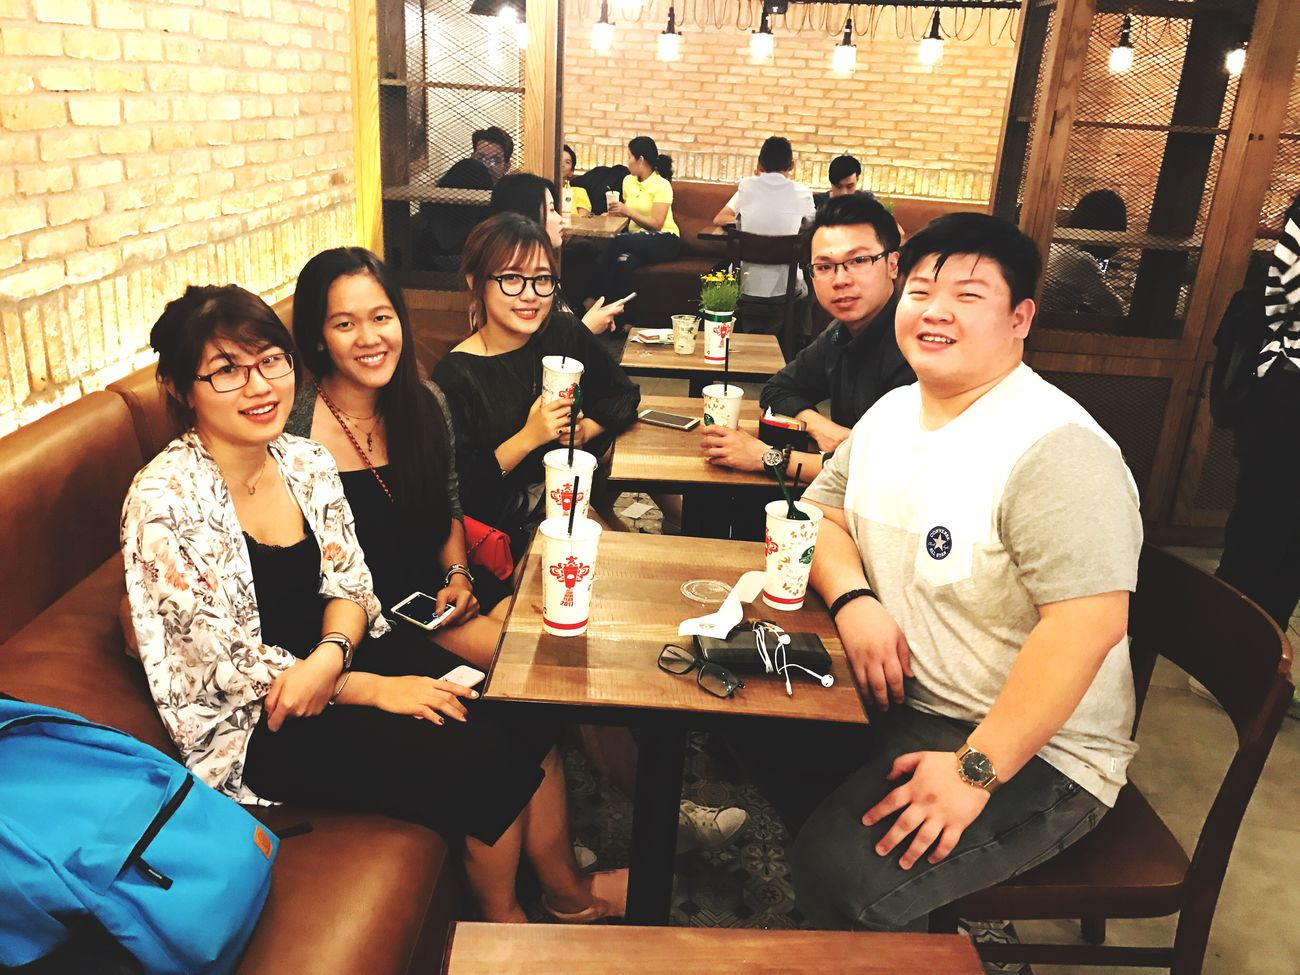 Lunar new year reunion with my friends and housemates in the UK Tetholiday Vietnamesenewyear Lunarnewyear Hanging Out Friendship Happiness Young Adult Smiling Joy